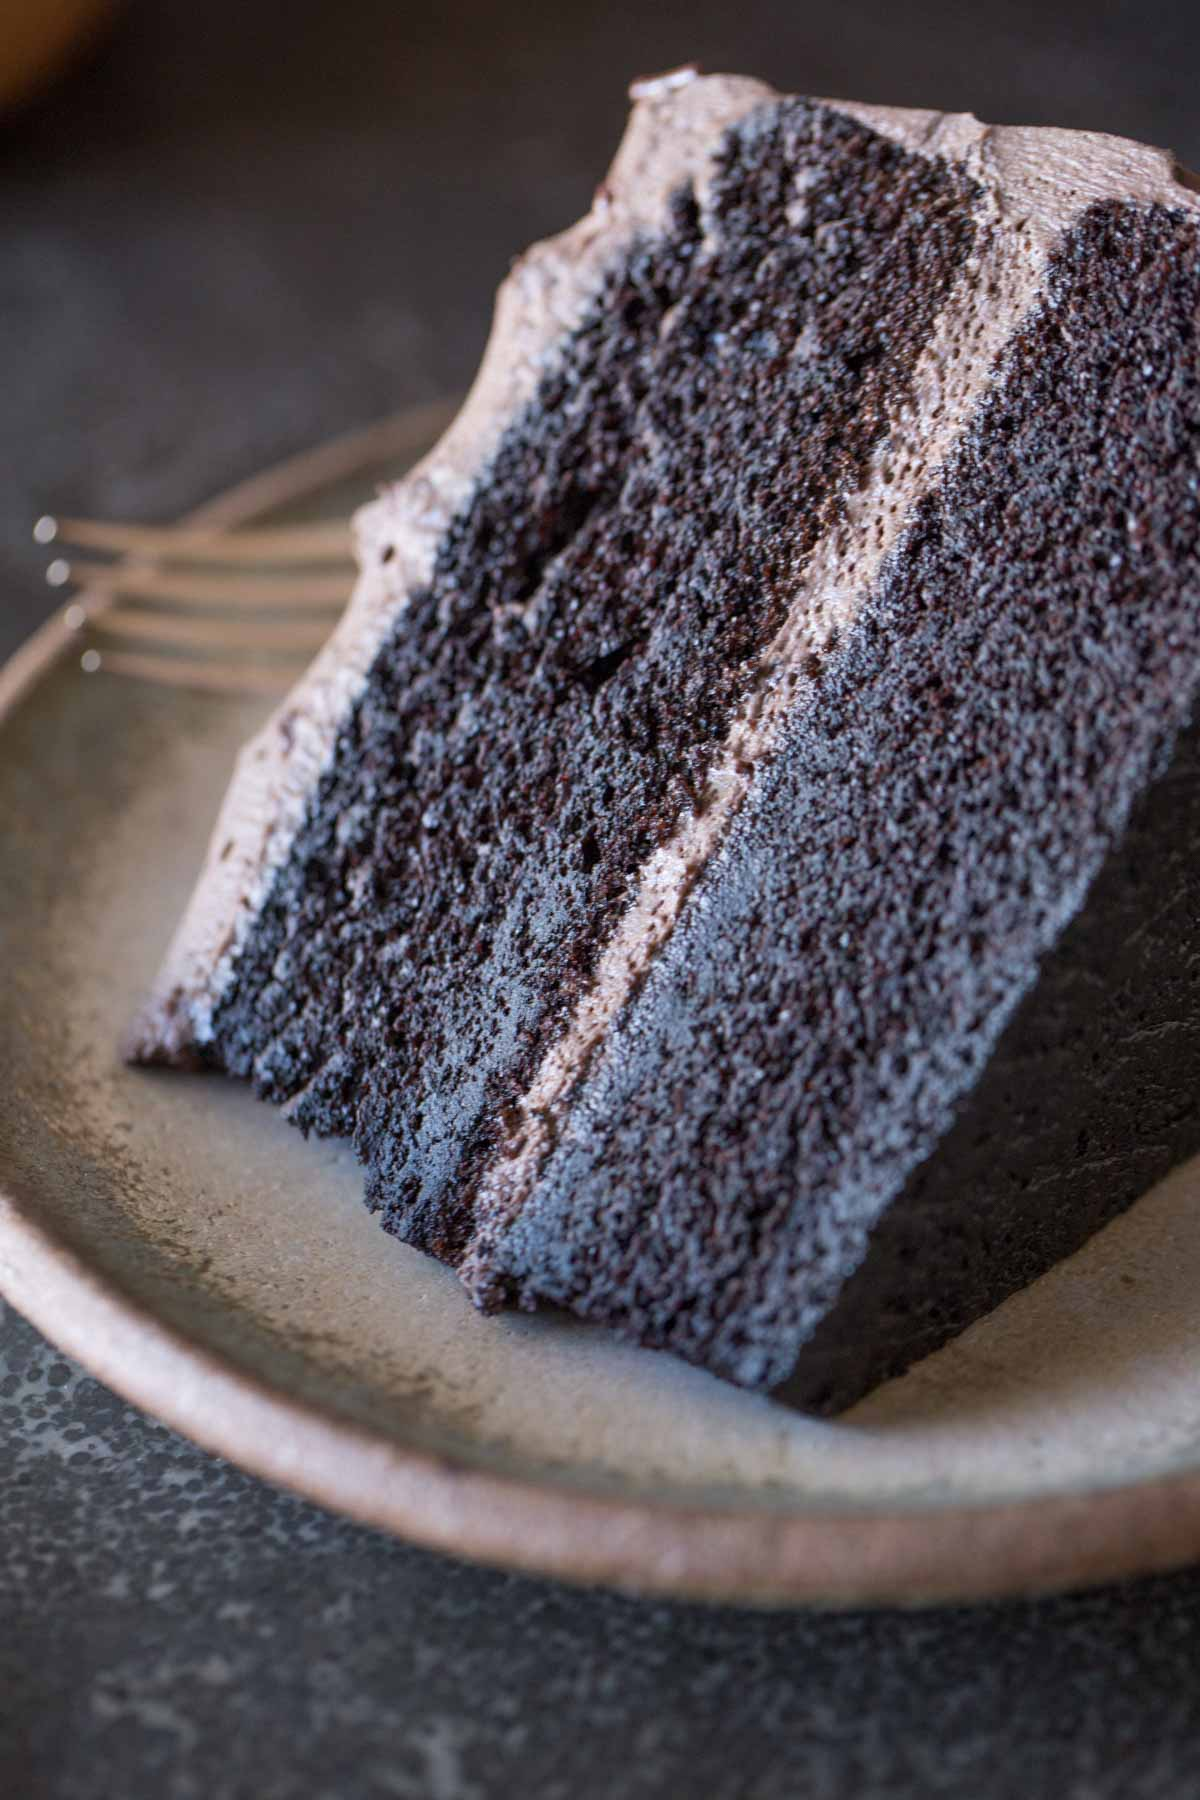 Recipe: Tasty Moist chocolate cake with whipped cream frosting